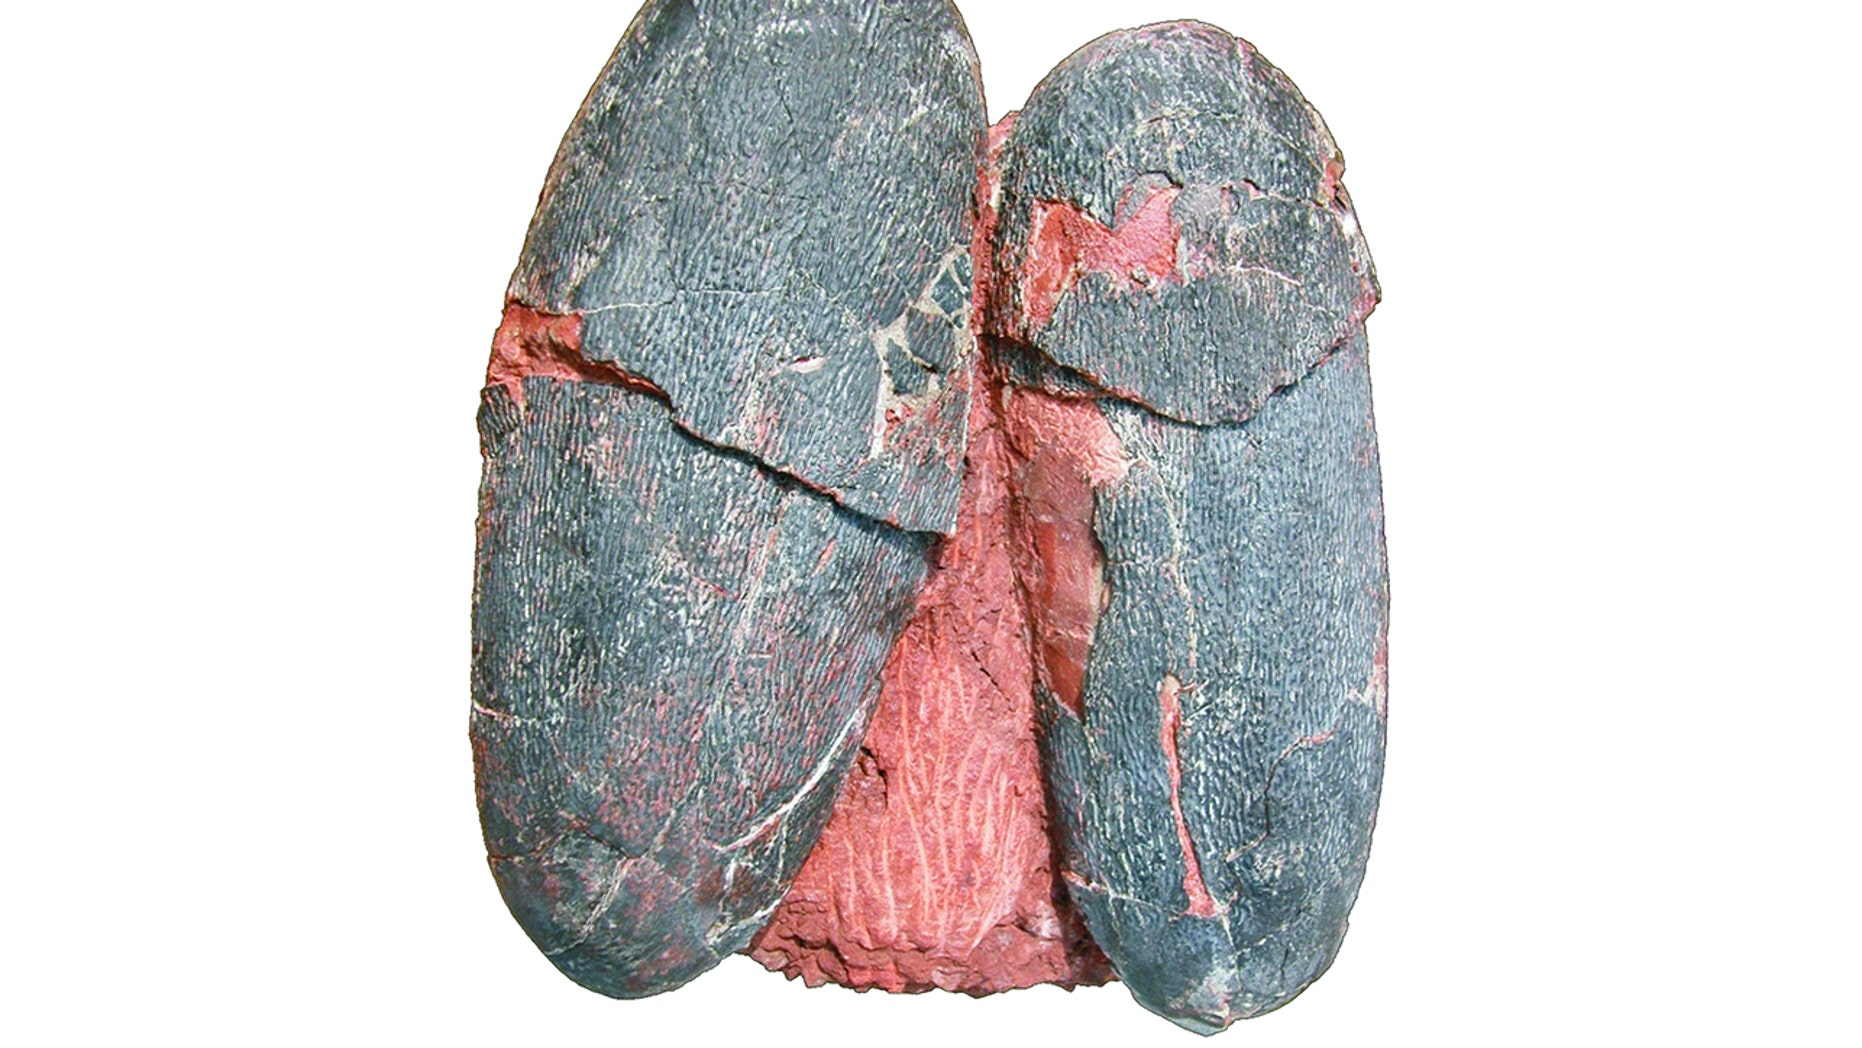 Fossilized eggs belonging to the Cretaceous dinosaur Heyuannia huangi hold traces of pigment hinting that they were a blue-green color. To the naked eye, they appear blackish-brown.